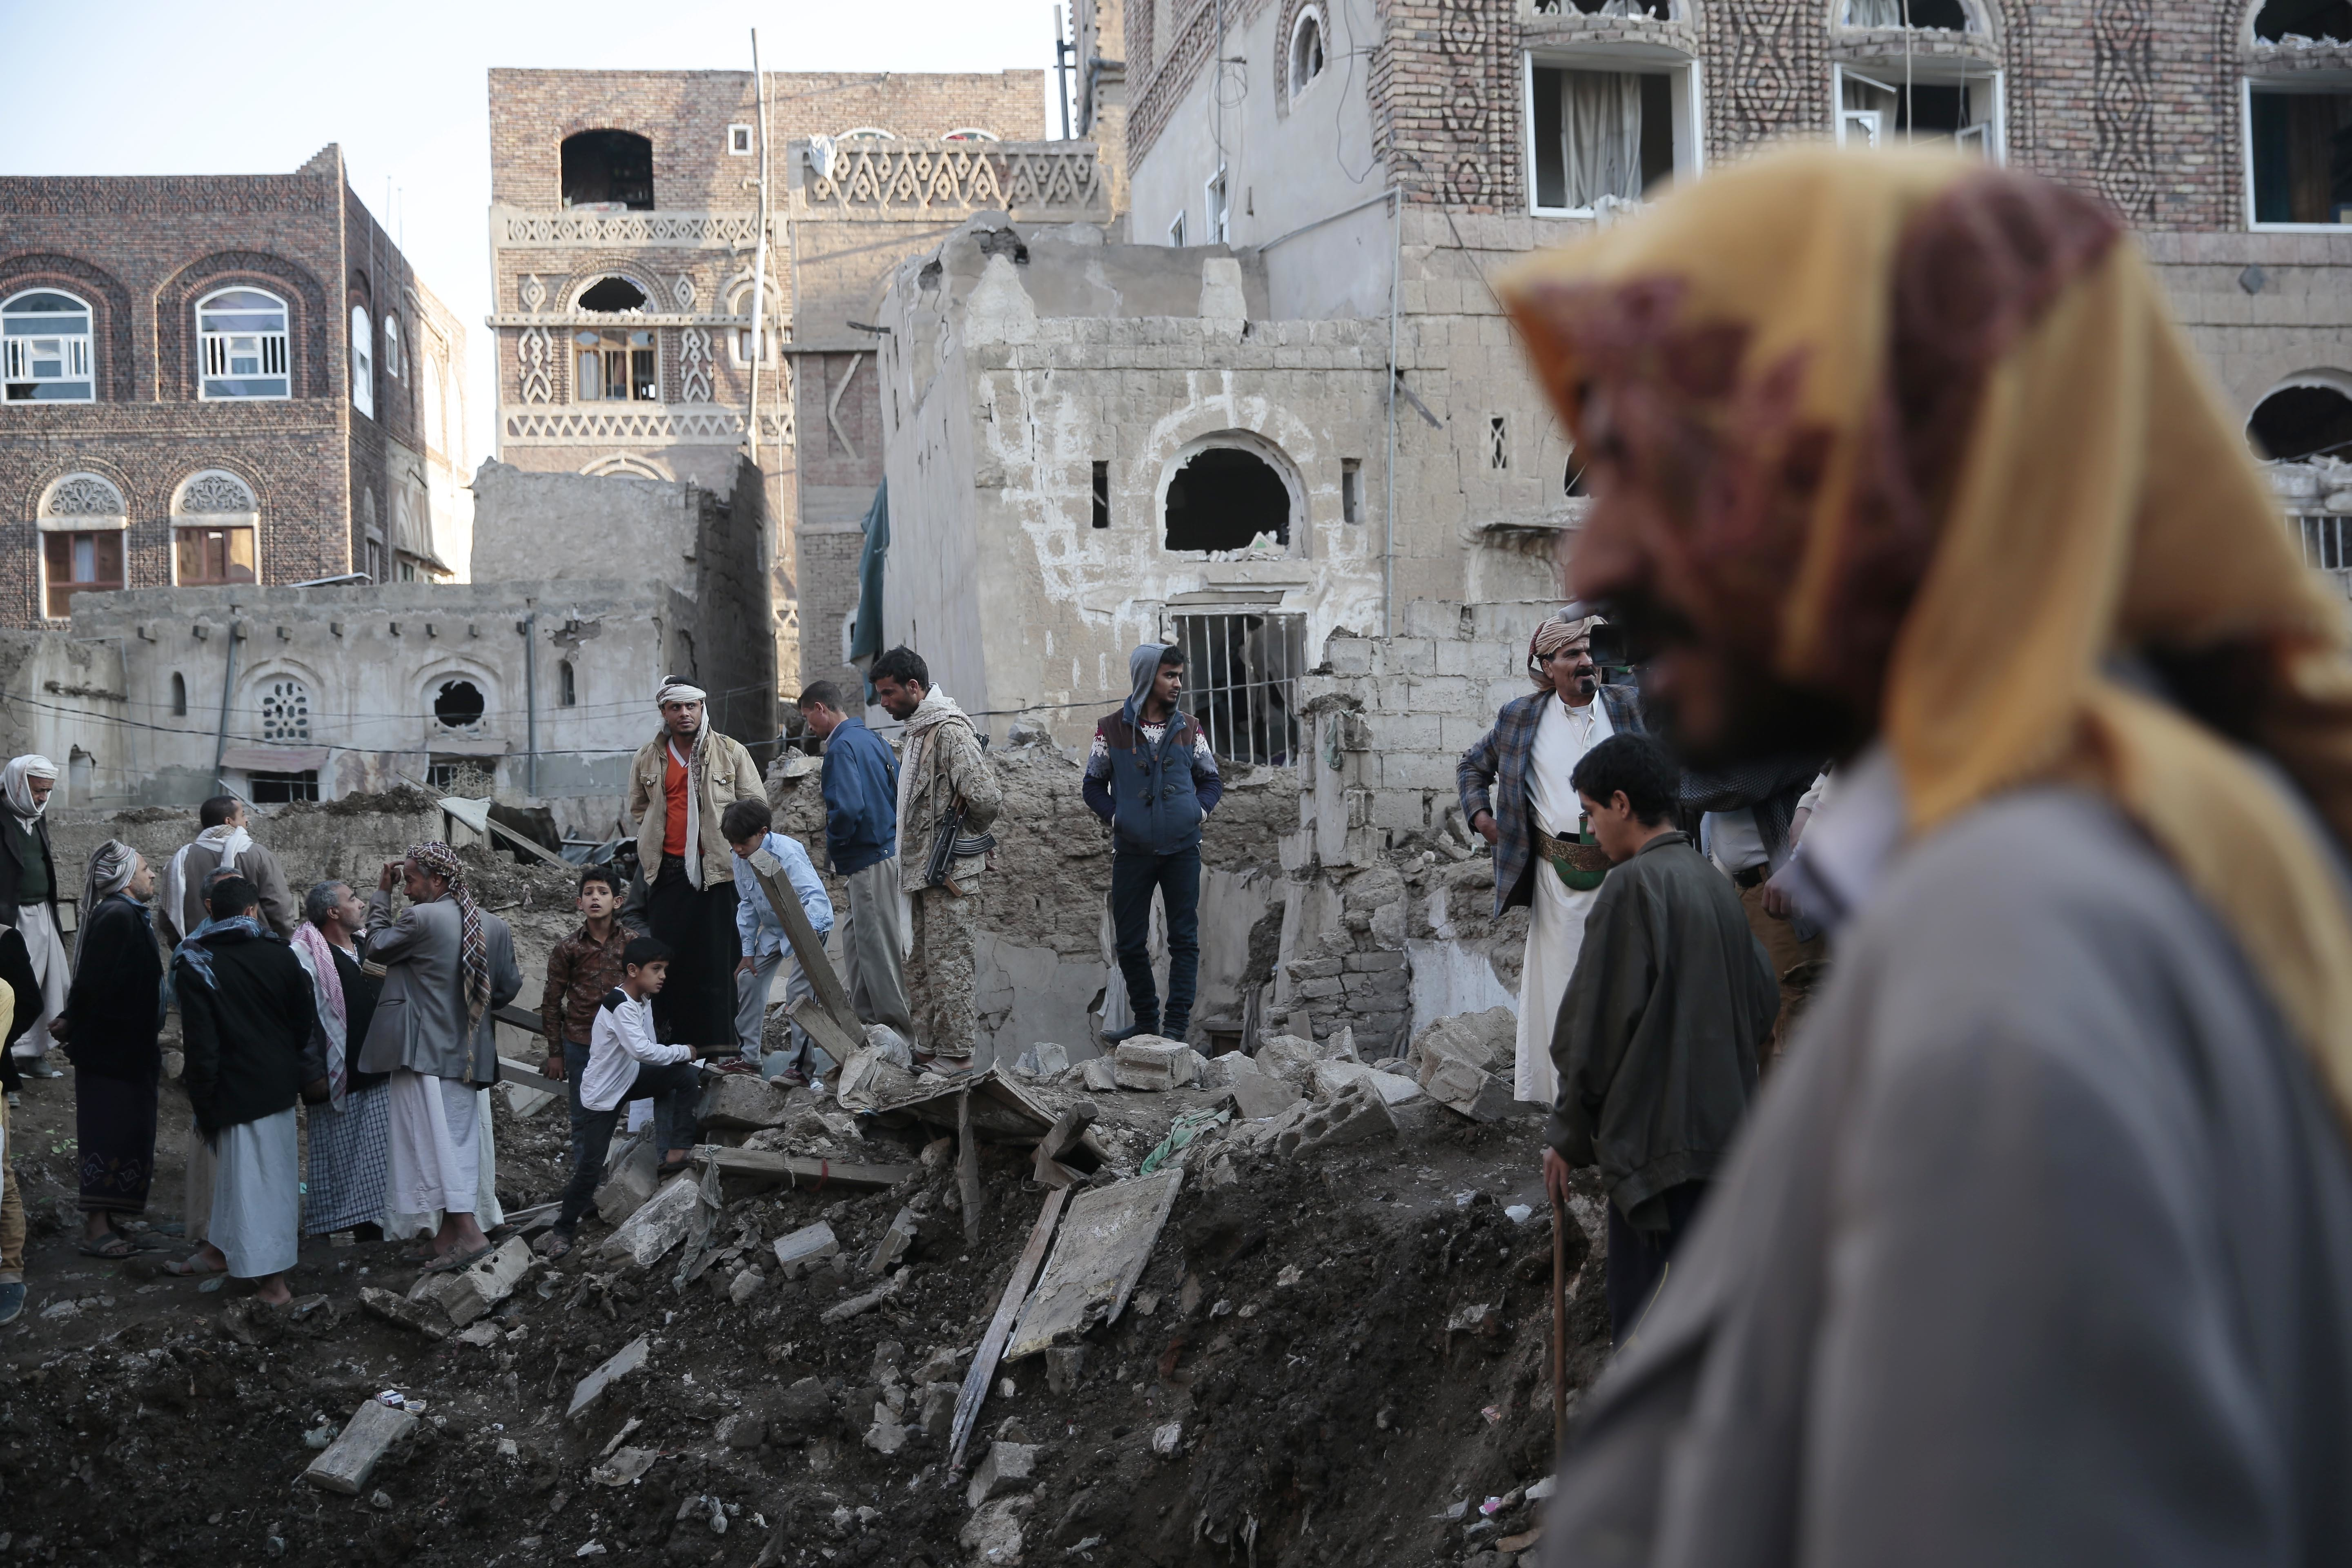 People search through the rubble of houses at the site of a Saudi-led airstrike near Yemen's Defense Ministry complex in Sanaa, Yemen, on Nov. 11, 2017.